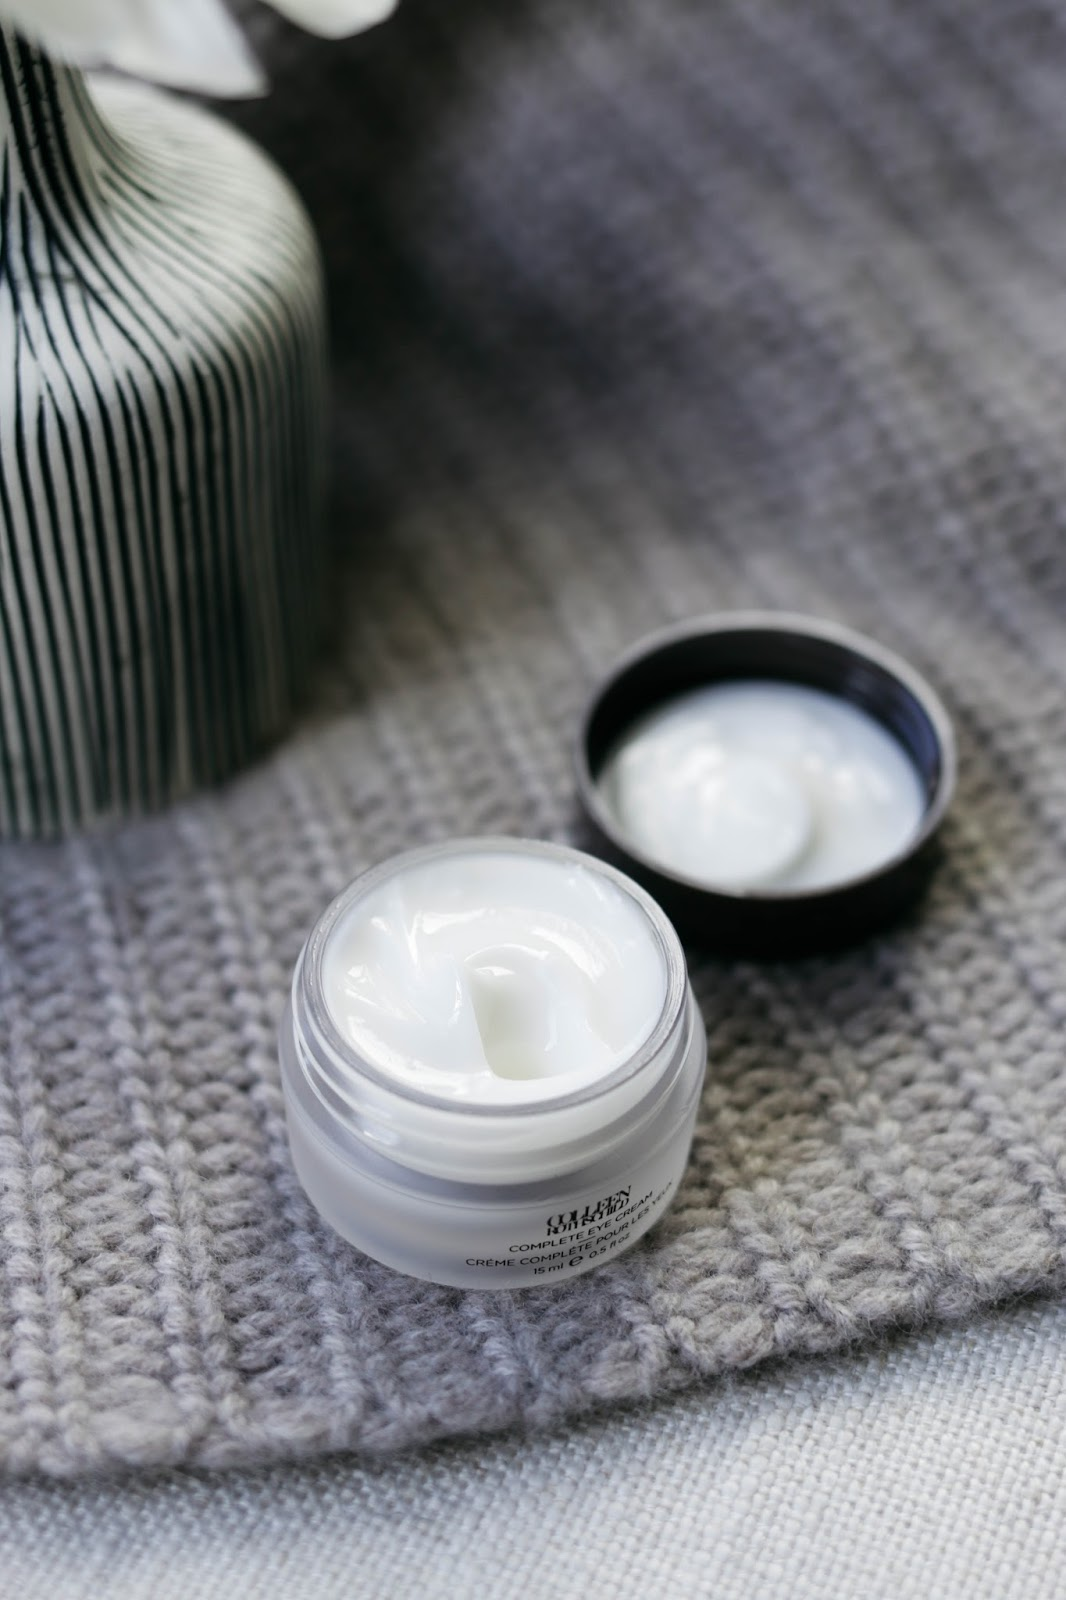 skin care, skin, products, review, beauty, blogger, blog, colleen rothschild, skin care favorites, best skin care, eye cream, radiant skin, renewal, stop aging, wrinkles, fine lines, discount code, promo code